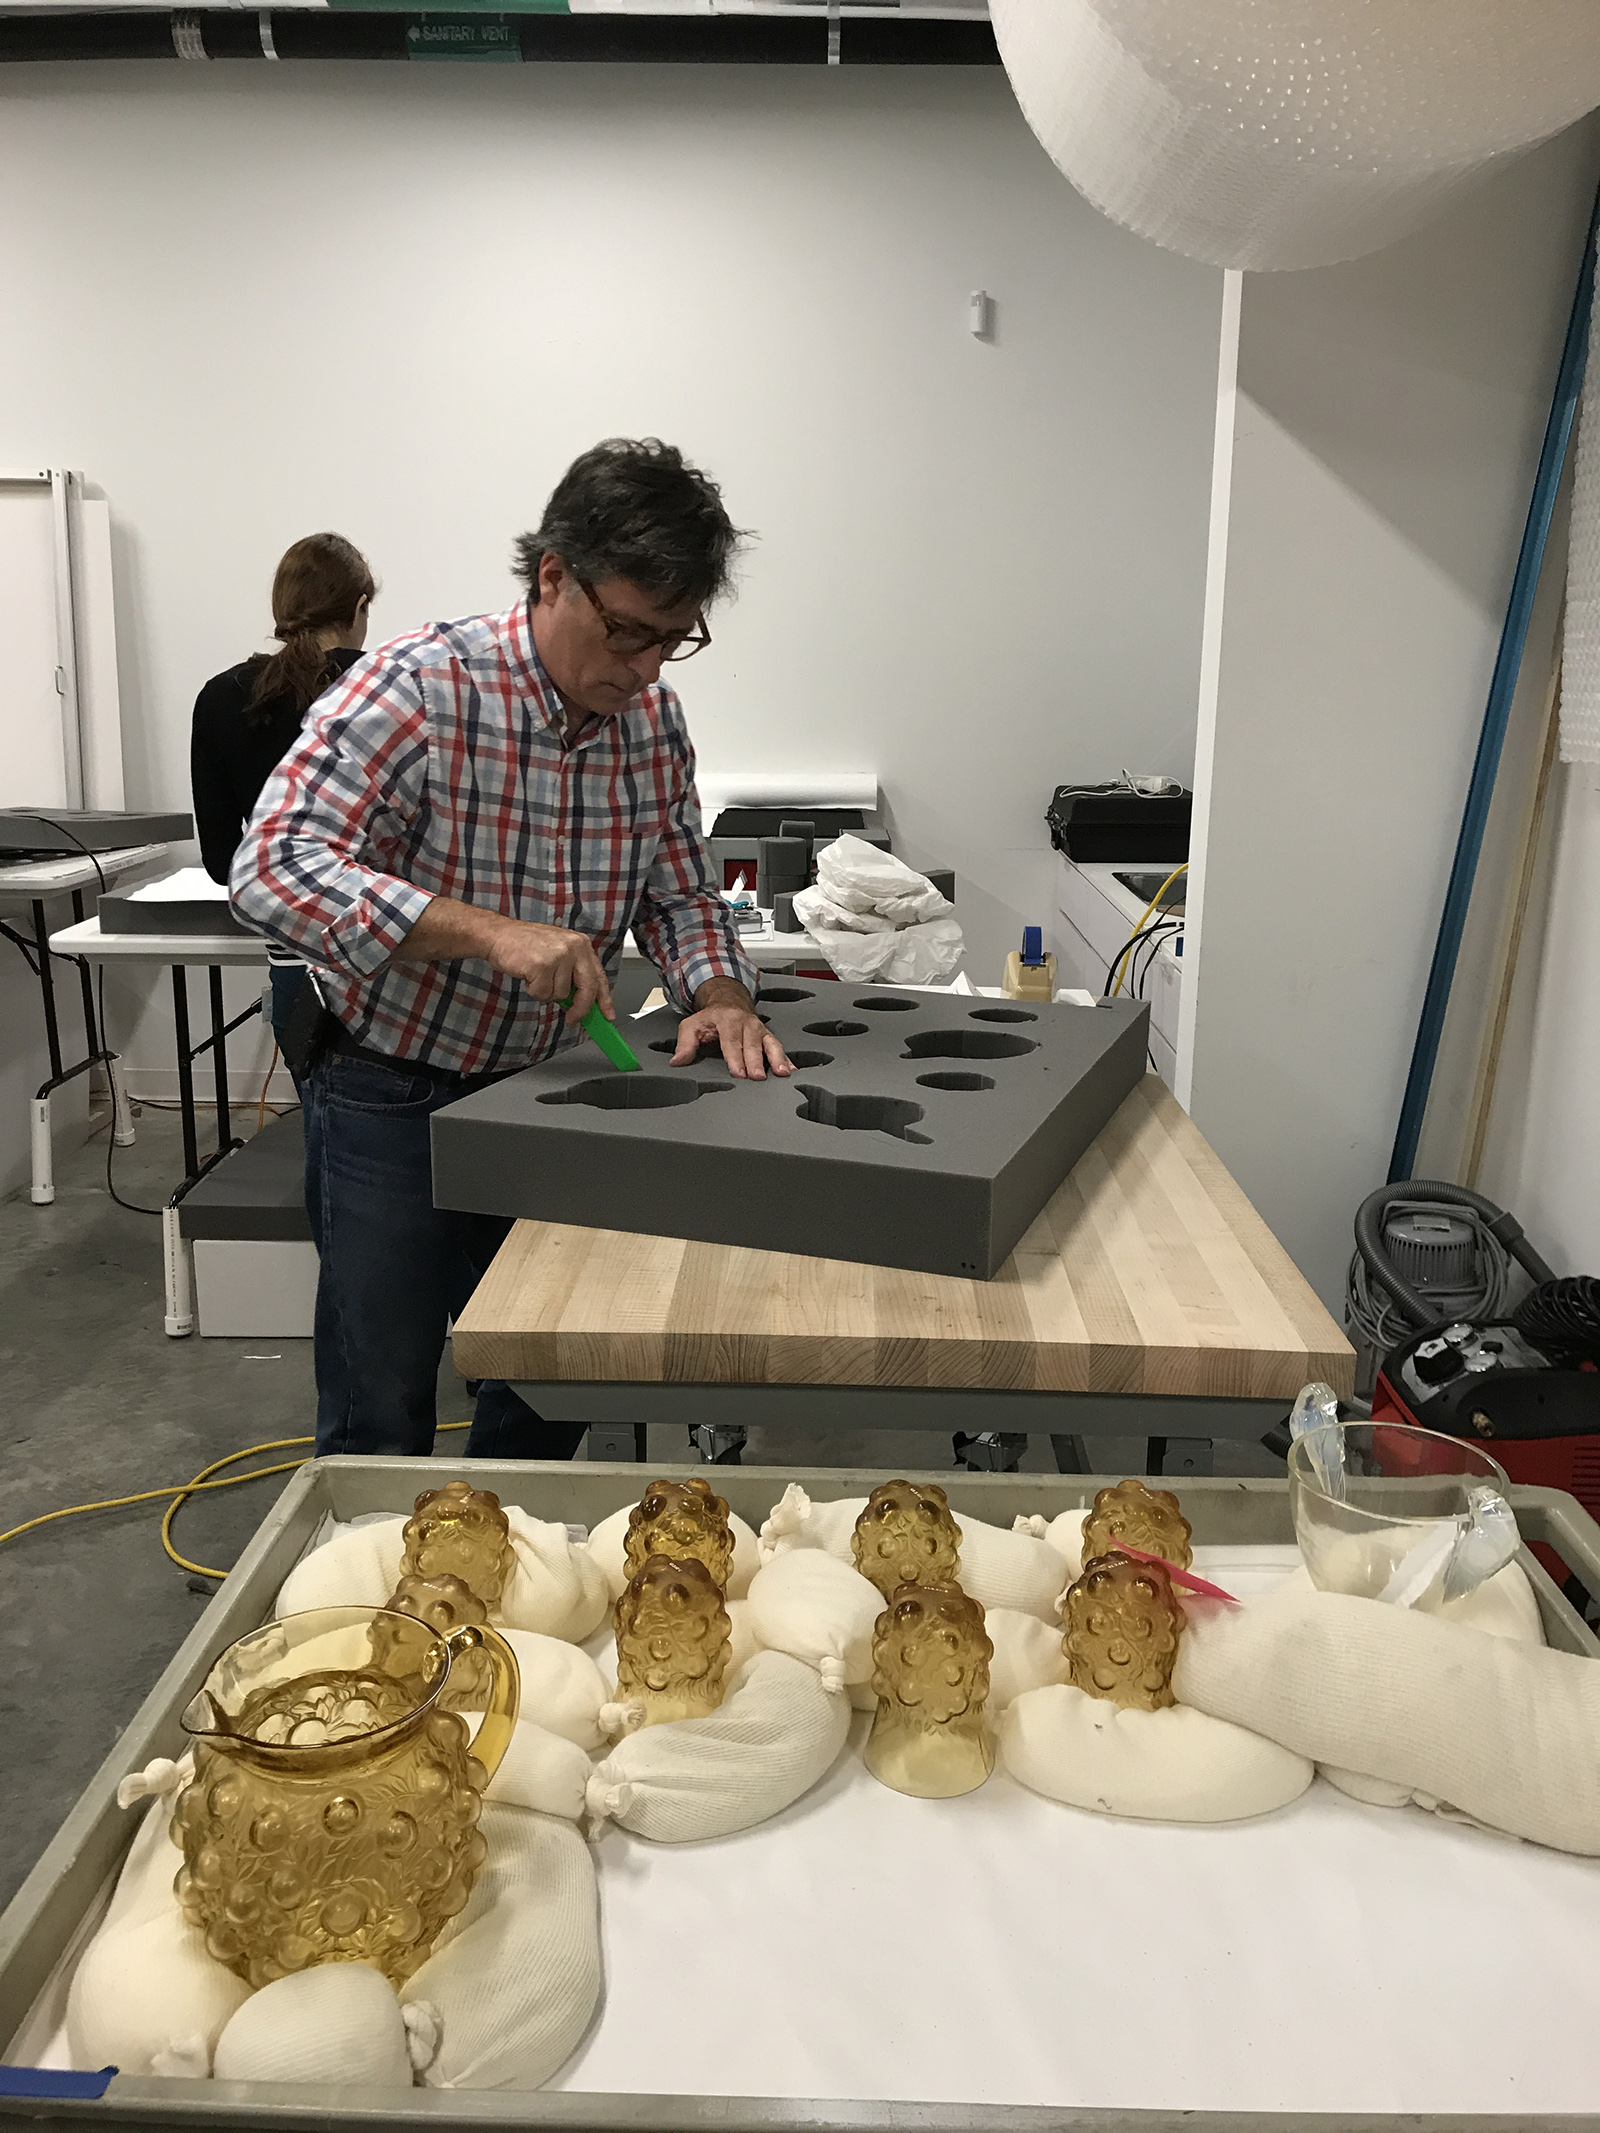 Tom cuts a void into the foam to fit each object.